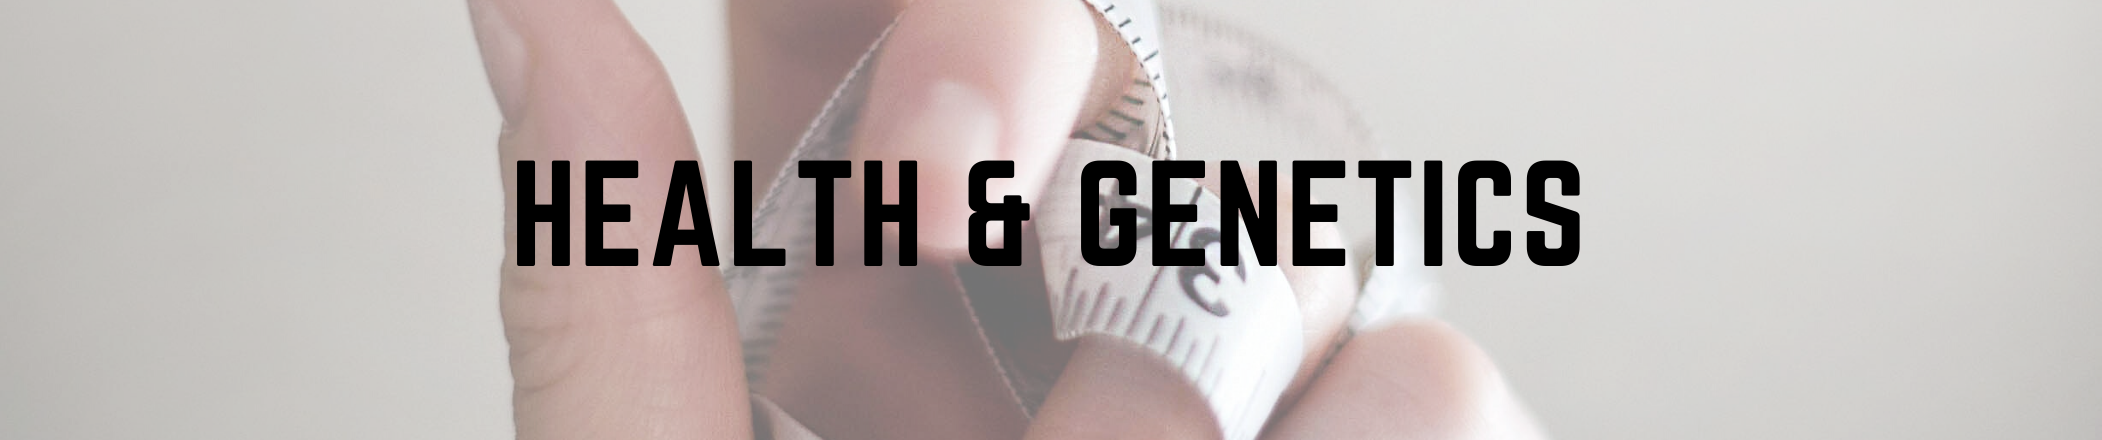 Health & Genetics text with image background